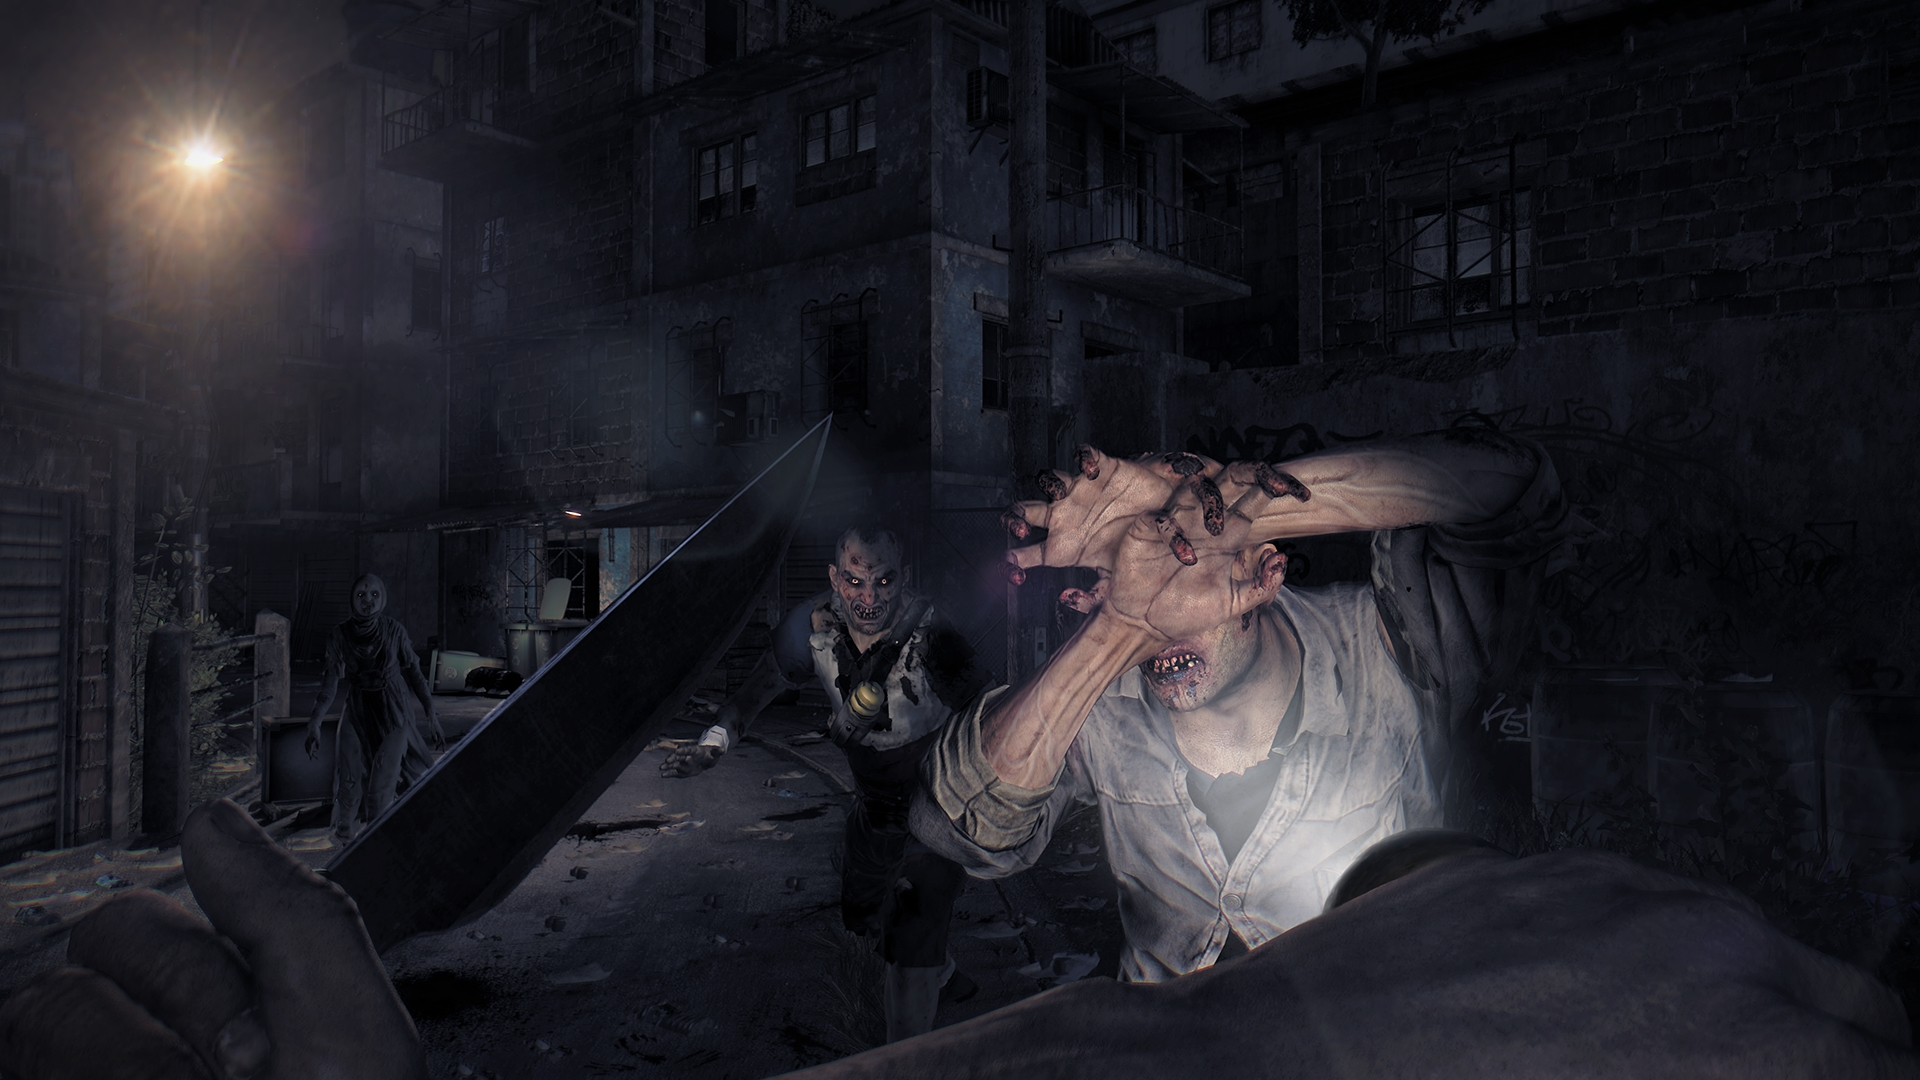 Techland, The Developer Of The Much Anticipated Dying Light, Announced  Today That The PS3 And Xbox 360 Versions Of The Game Has Been Cancelled.